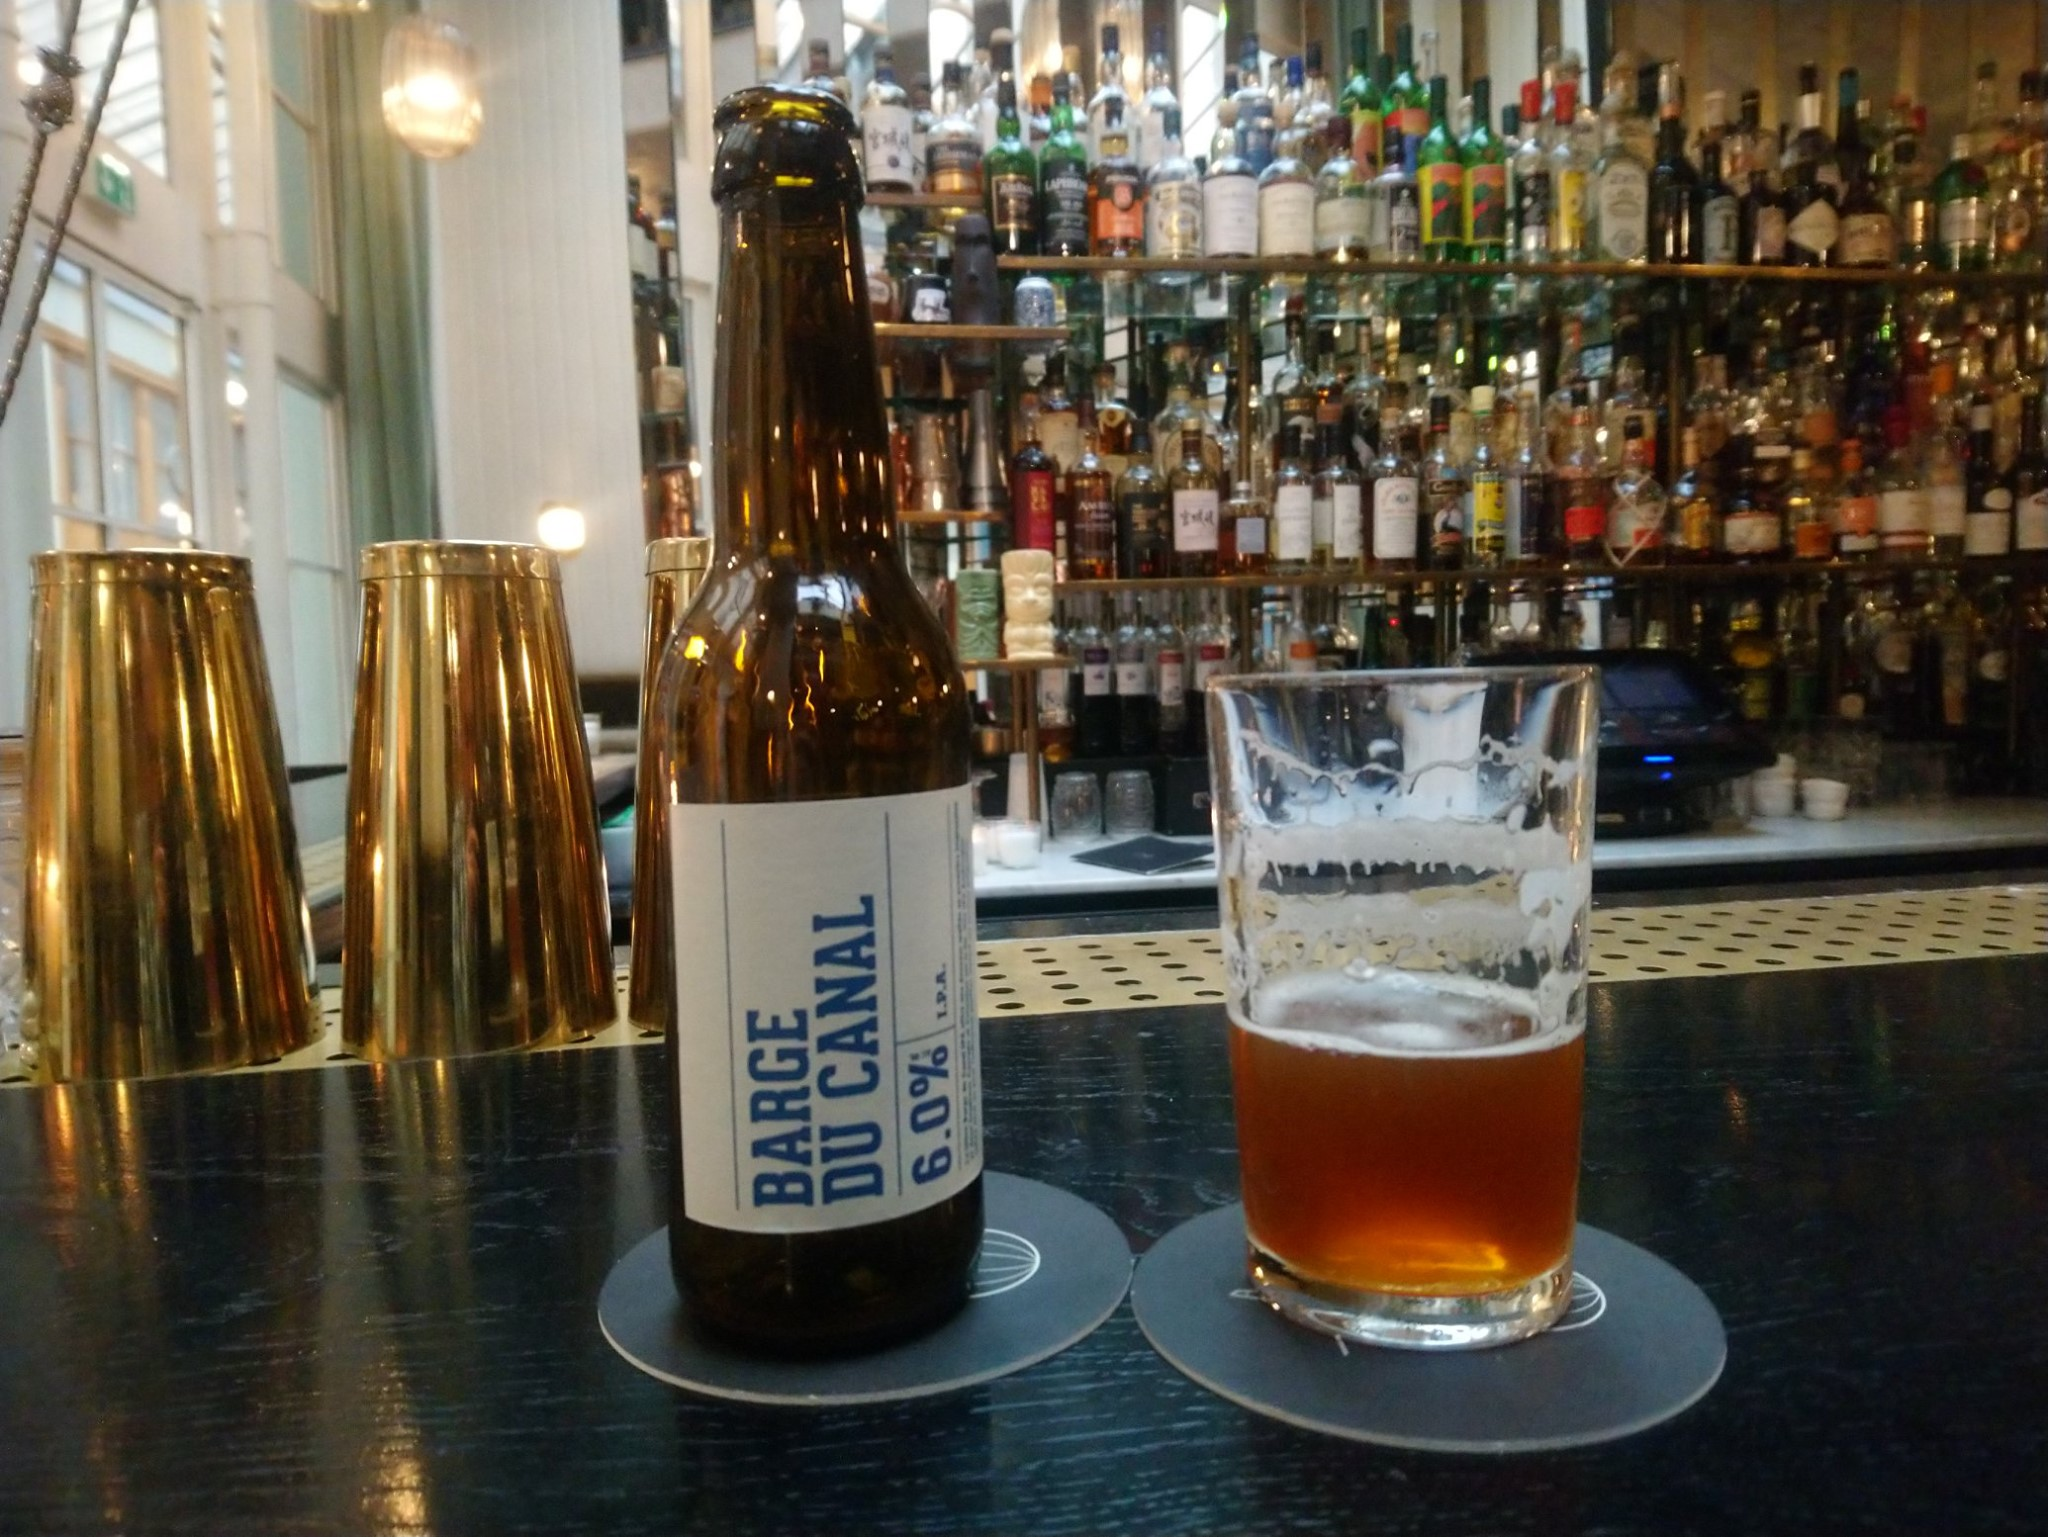 IPA Barge du Canal - Paname Brewing Company - Danico Paris